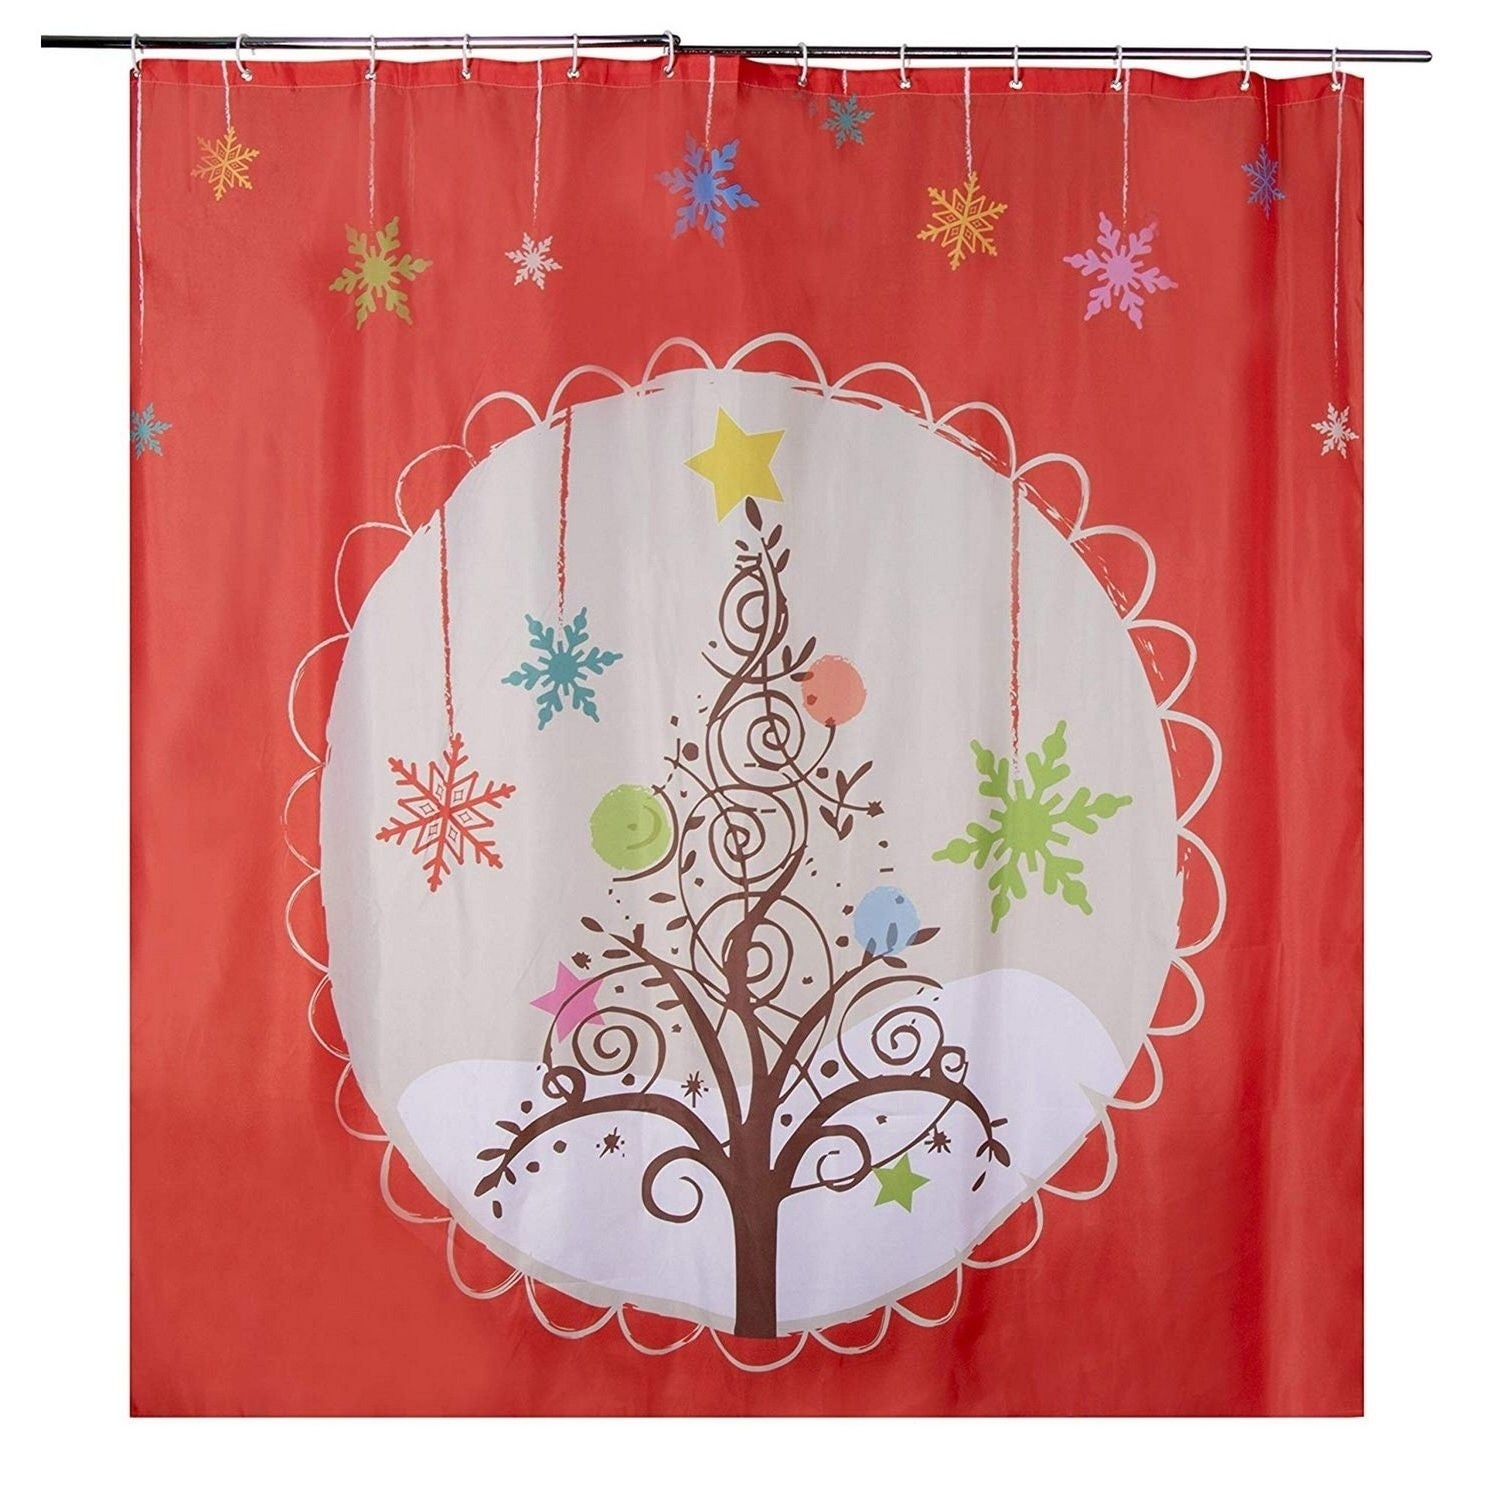 Christmas Shower Curtain W Hooks Polyester Fabric Christmas Tree Orange 71